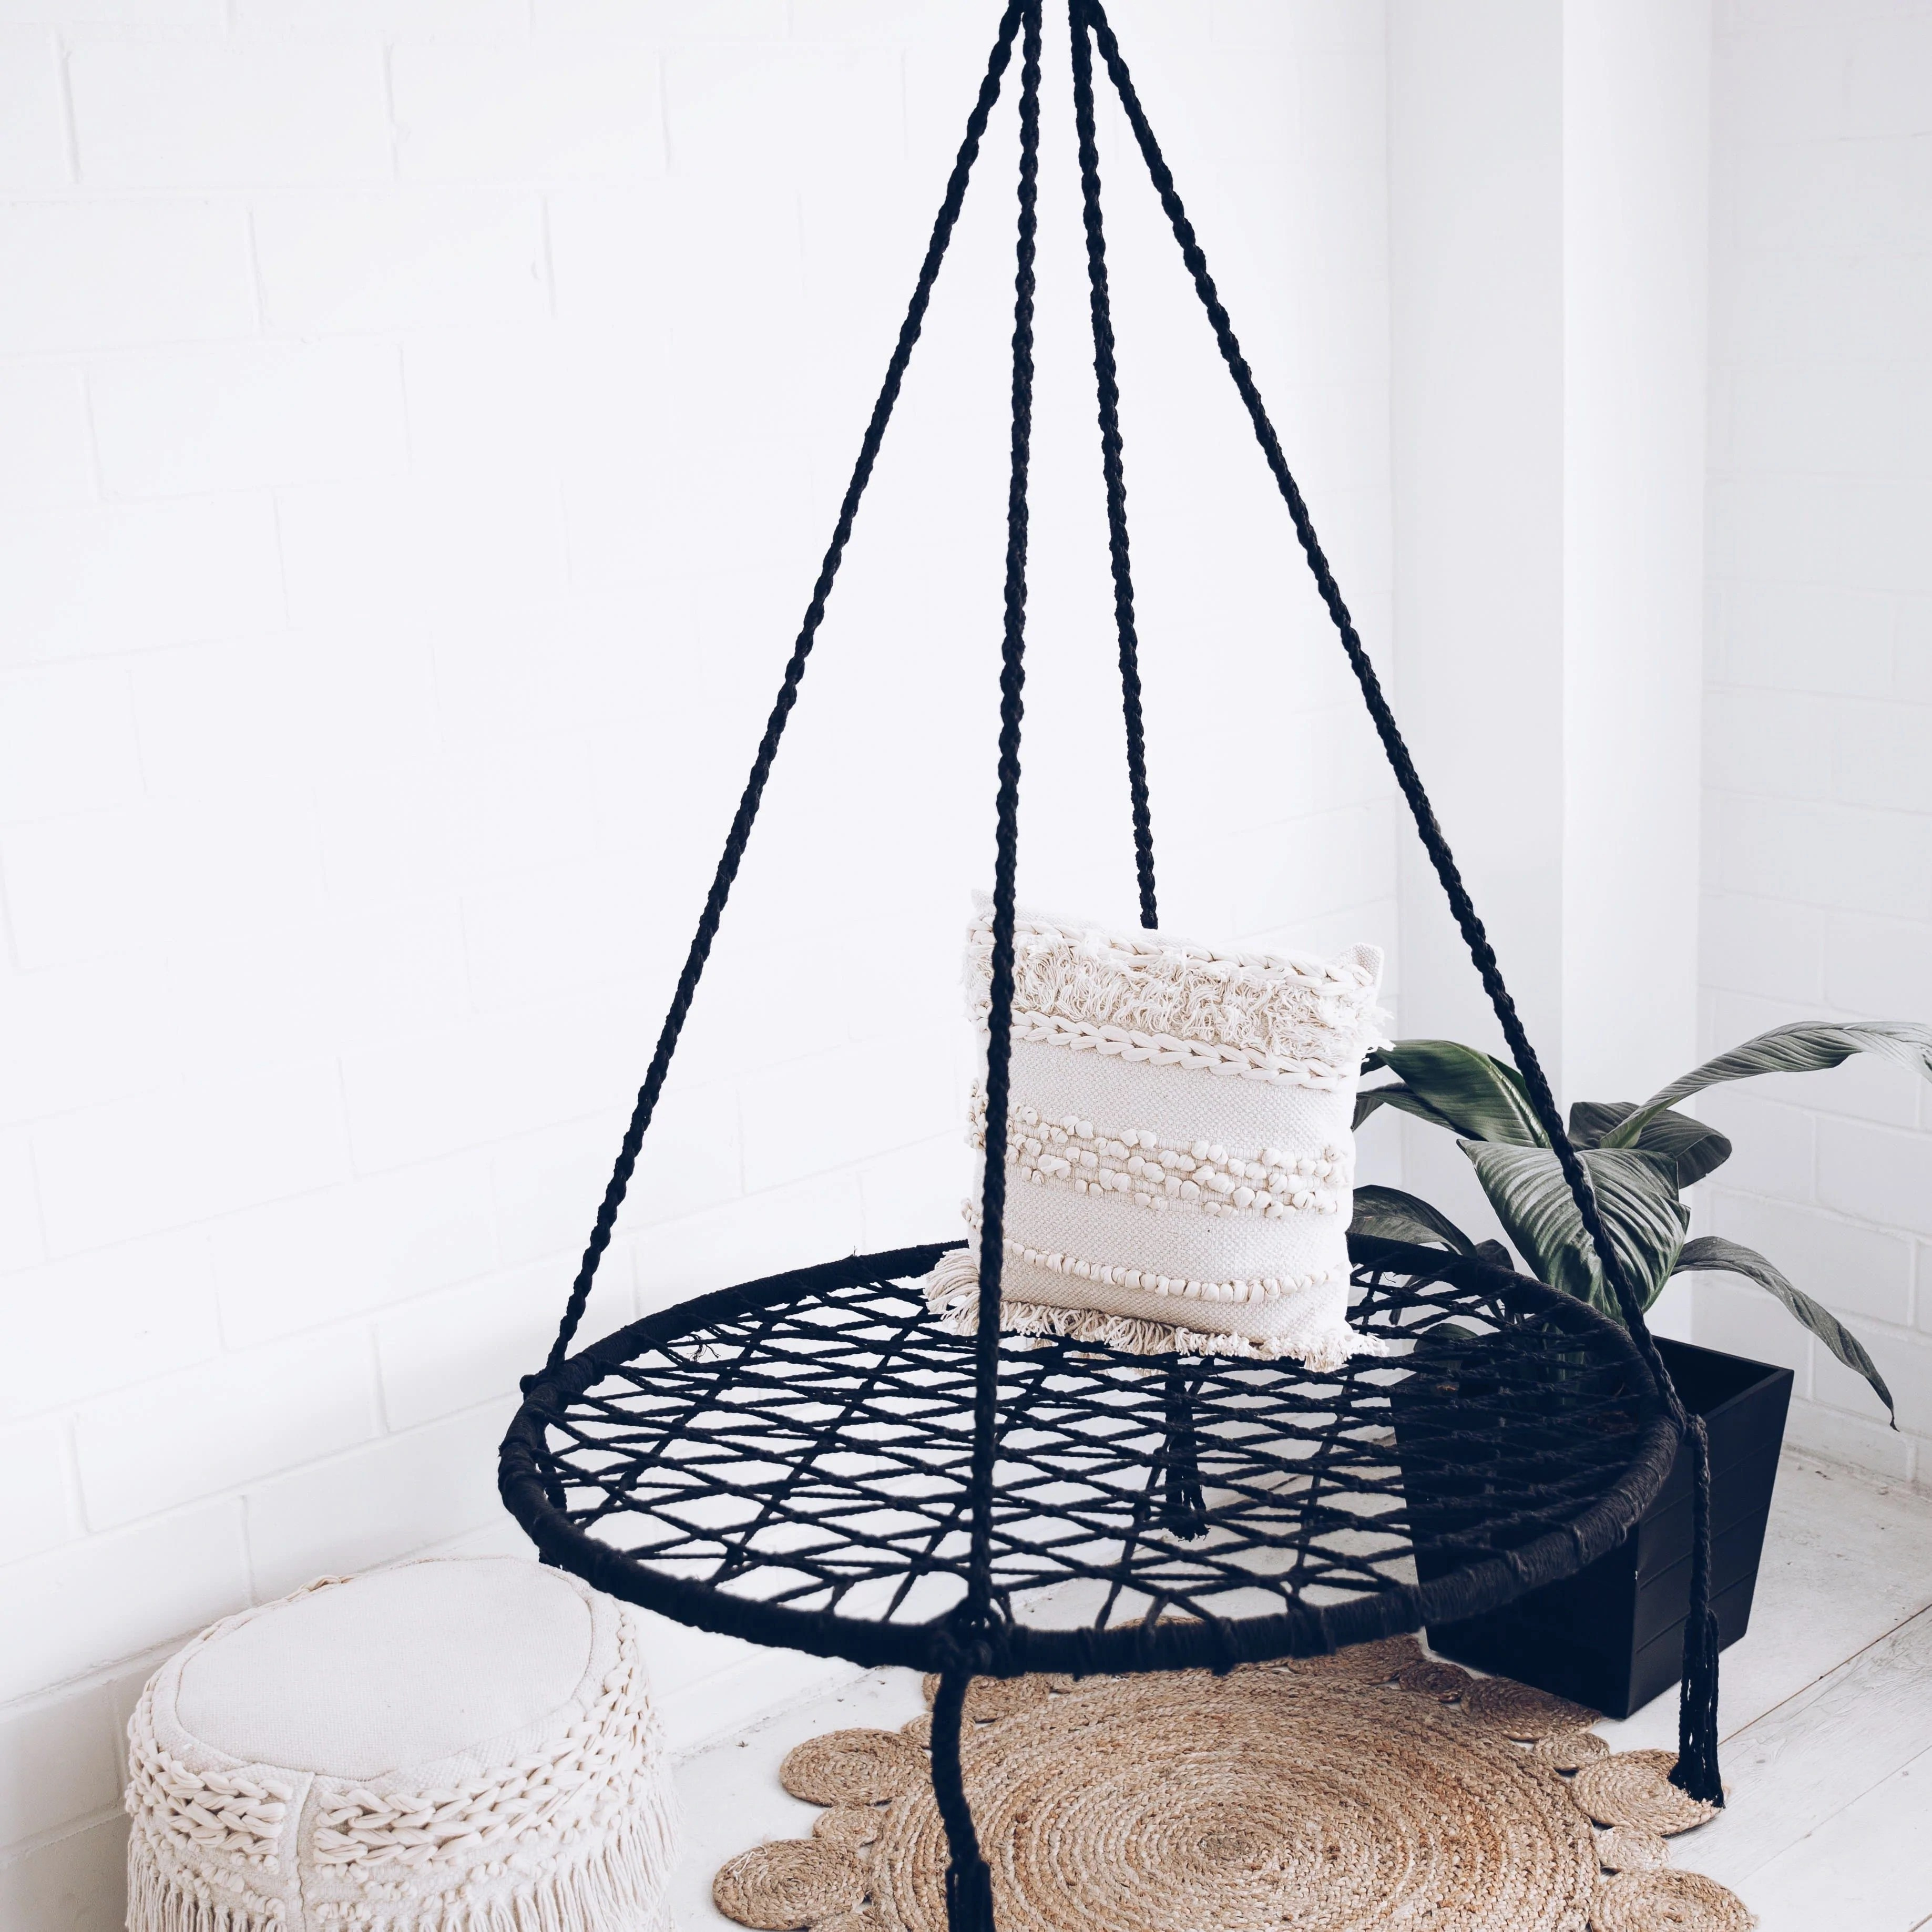 Marrakech Swing Chair Large Round Macrame Nest Swing Morocco Black Ivory